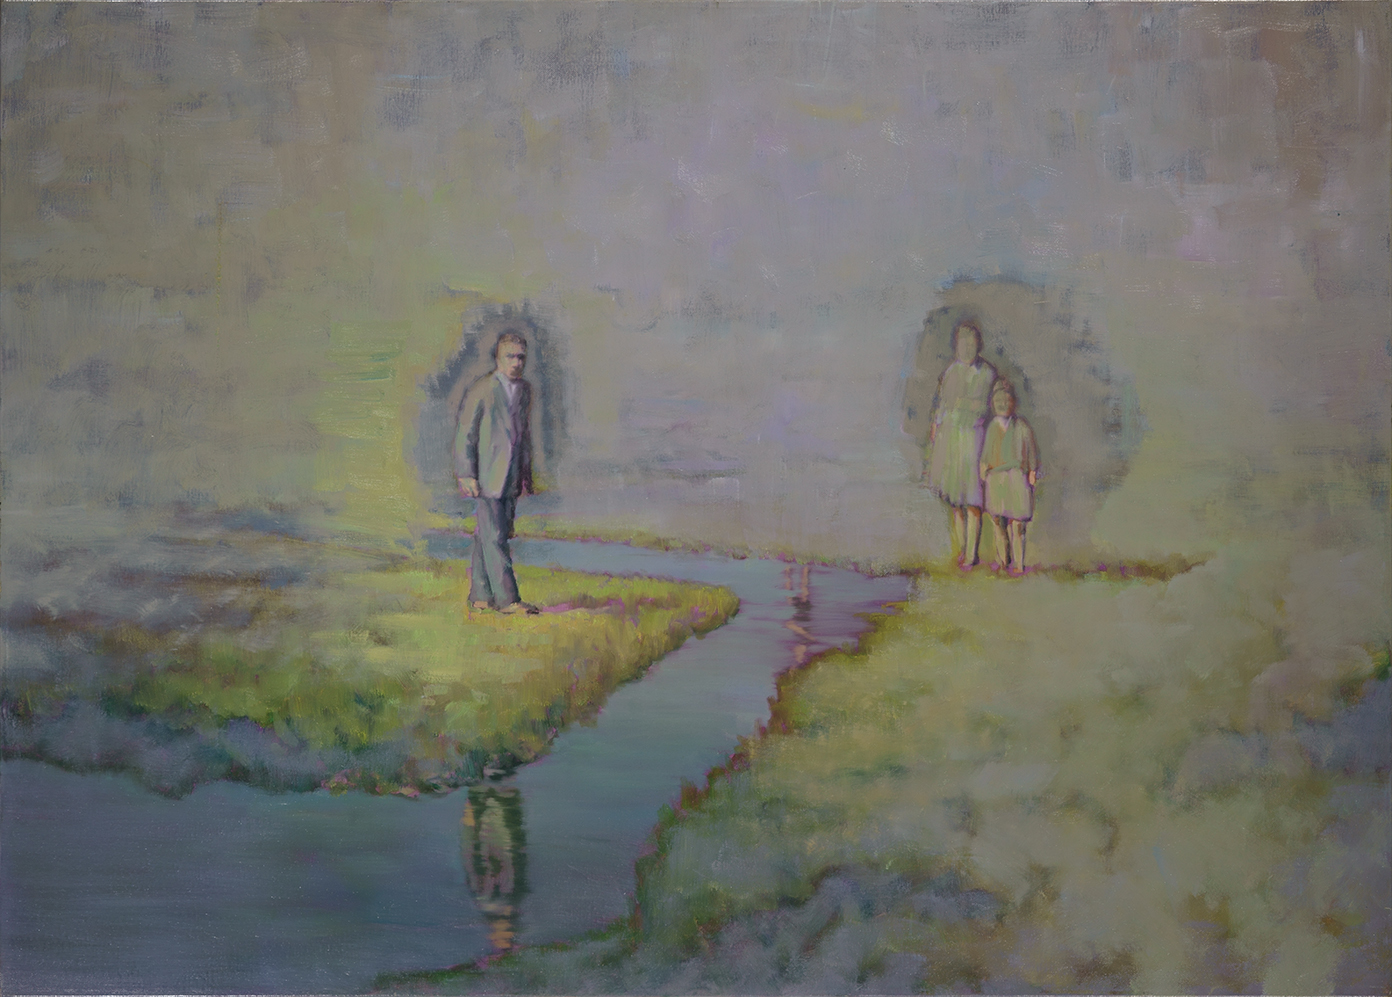 meadow with three figures o,c. 100x140cm. 2007